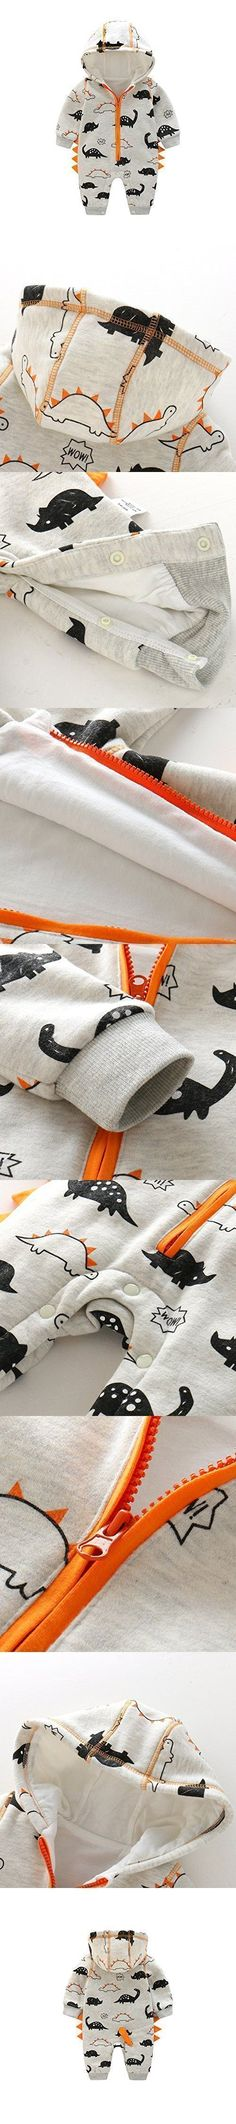 Newborn Baby Boy Baby Girl Unisex Clothes Long Sleeve Dinosaur Hoodies Winter Warm Romper outfit 3-6 months #babyboyhoodies #babygirlhoodie #babyboylongsleeve #babygirlhoodies #babyhoodies #babyboyoutfits #boyoutfits #babywinteroutfits